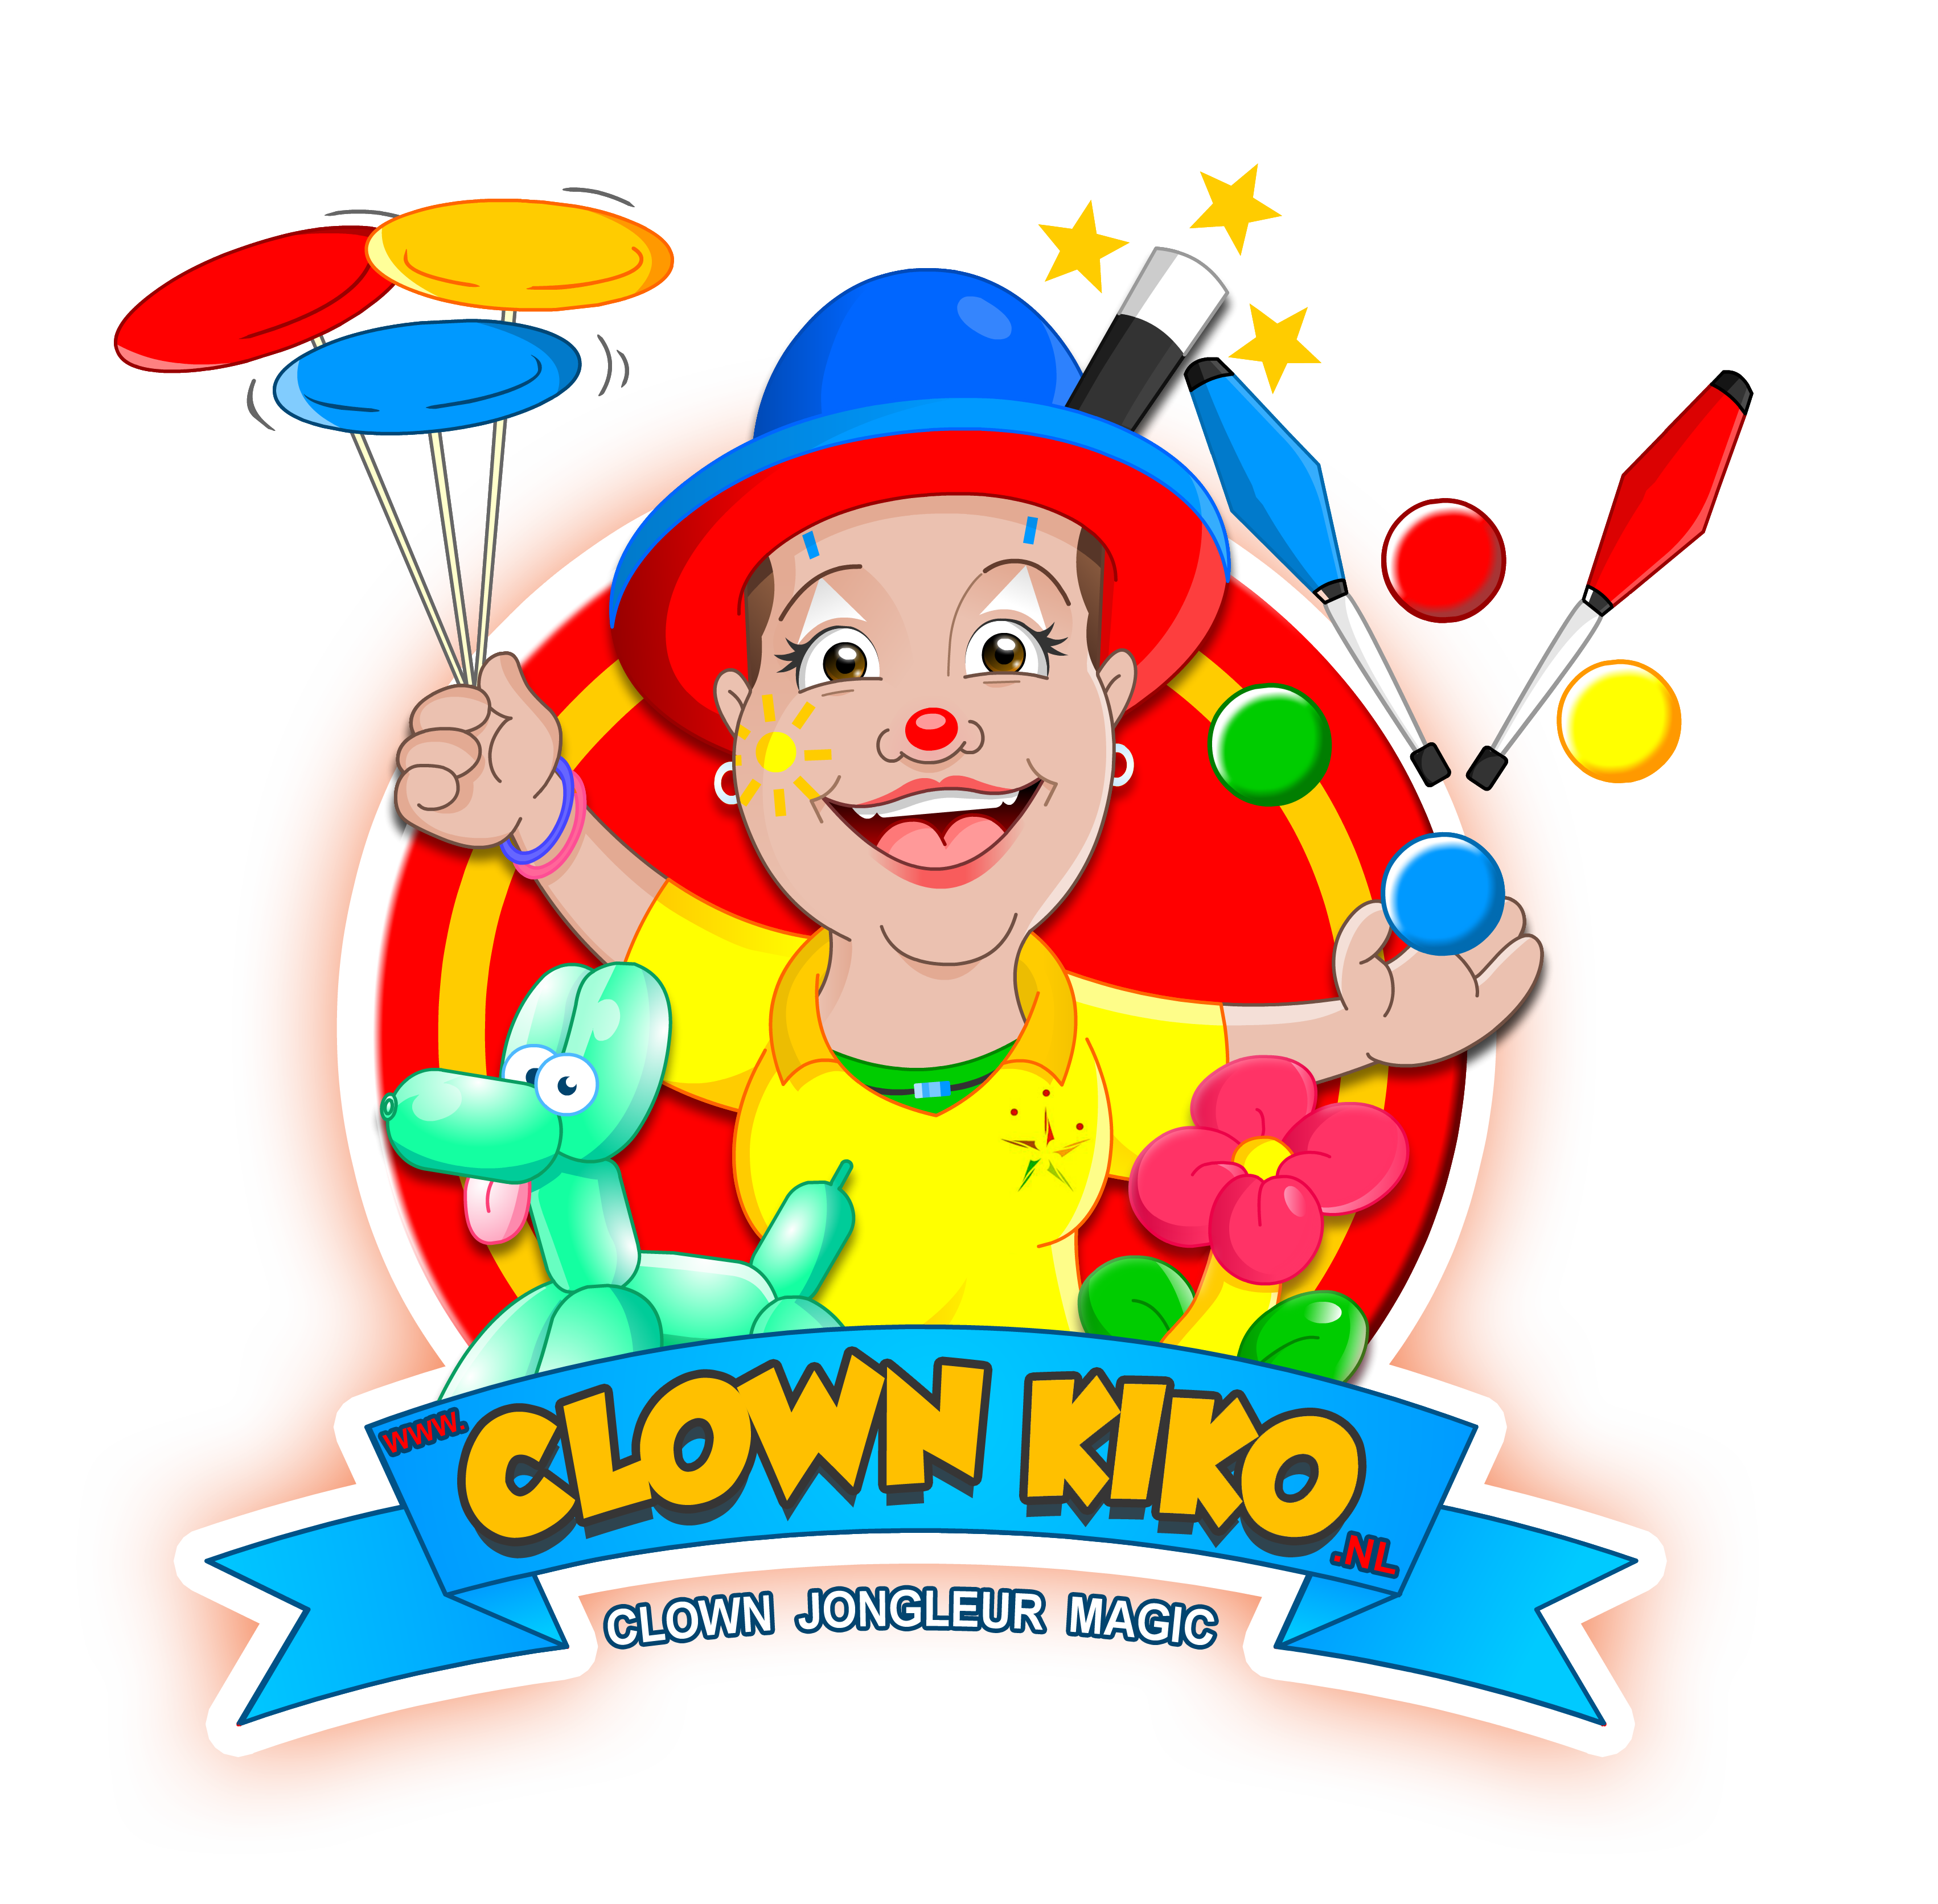 Clown Kiko - Clown Jongleur Magic